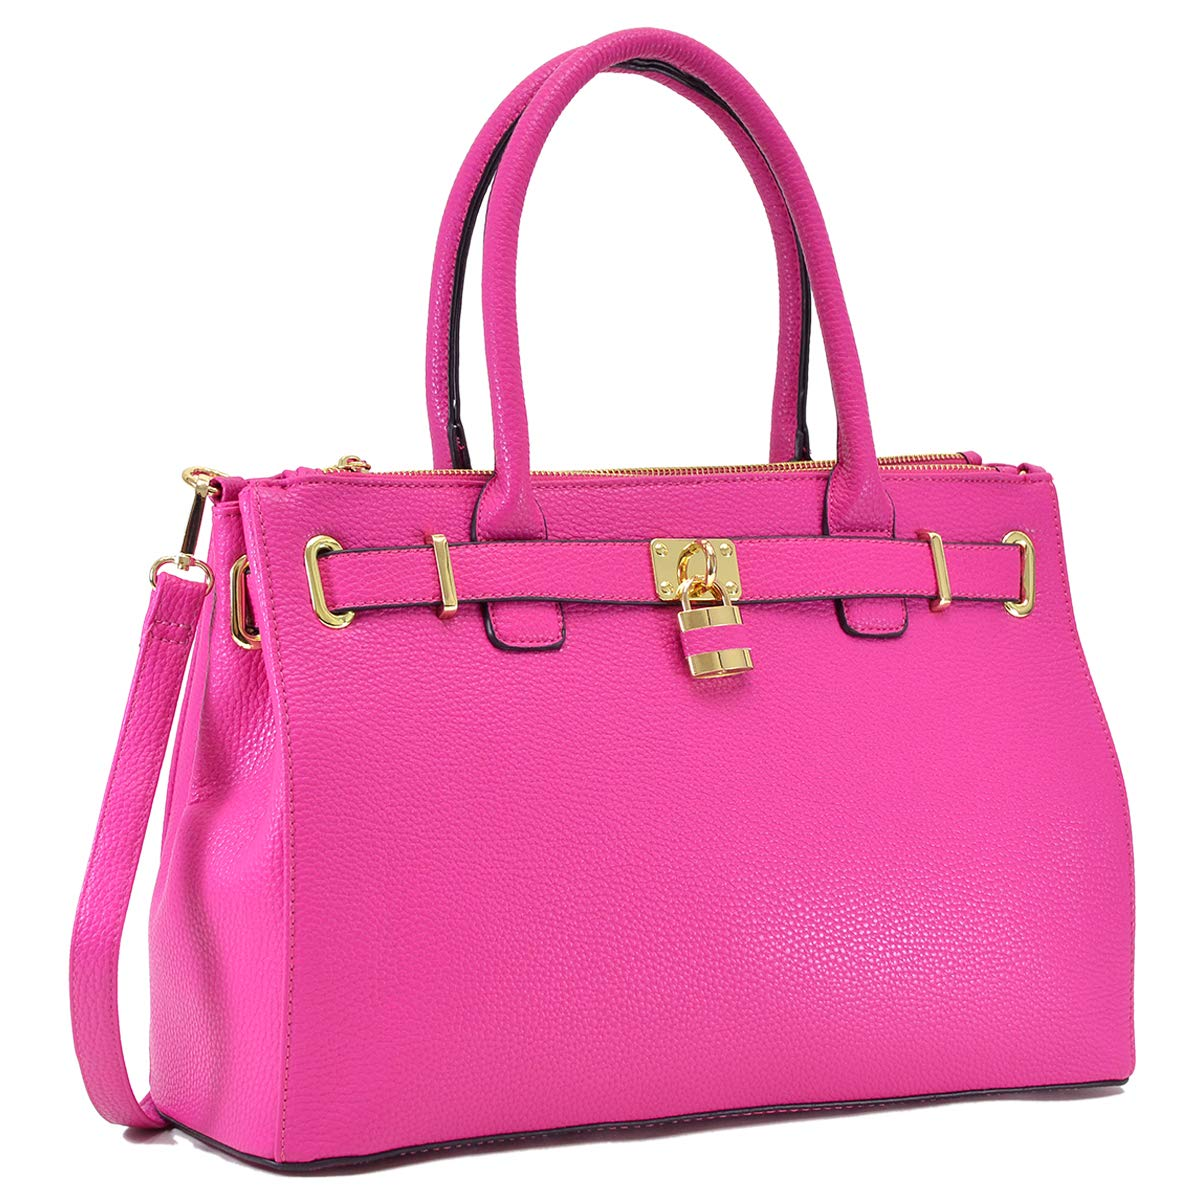 7cced7959e83 Dasein Women s Top Handle Satchel Handbags Tote Designer Purse Padlock Shoulder  Bag  Handbags  Amazon.com